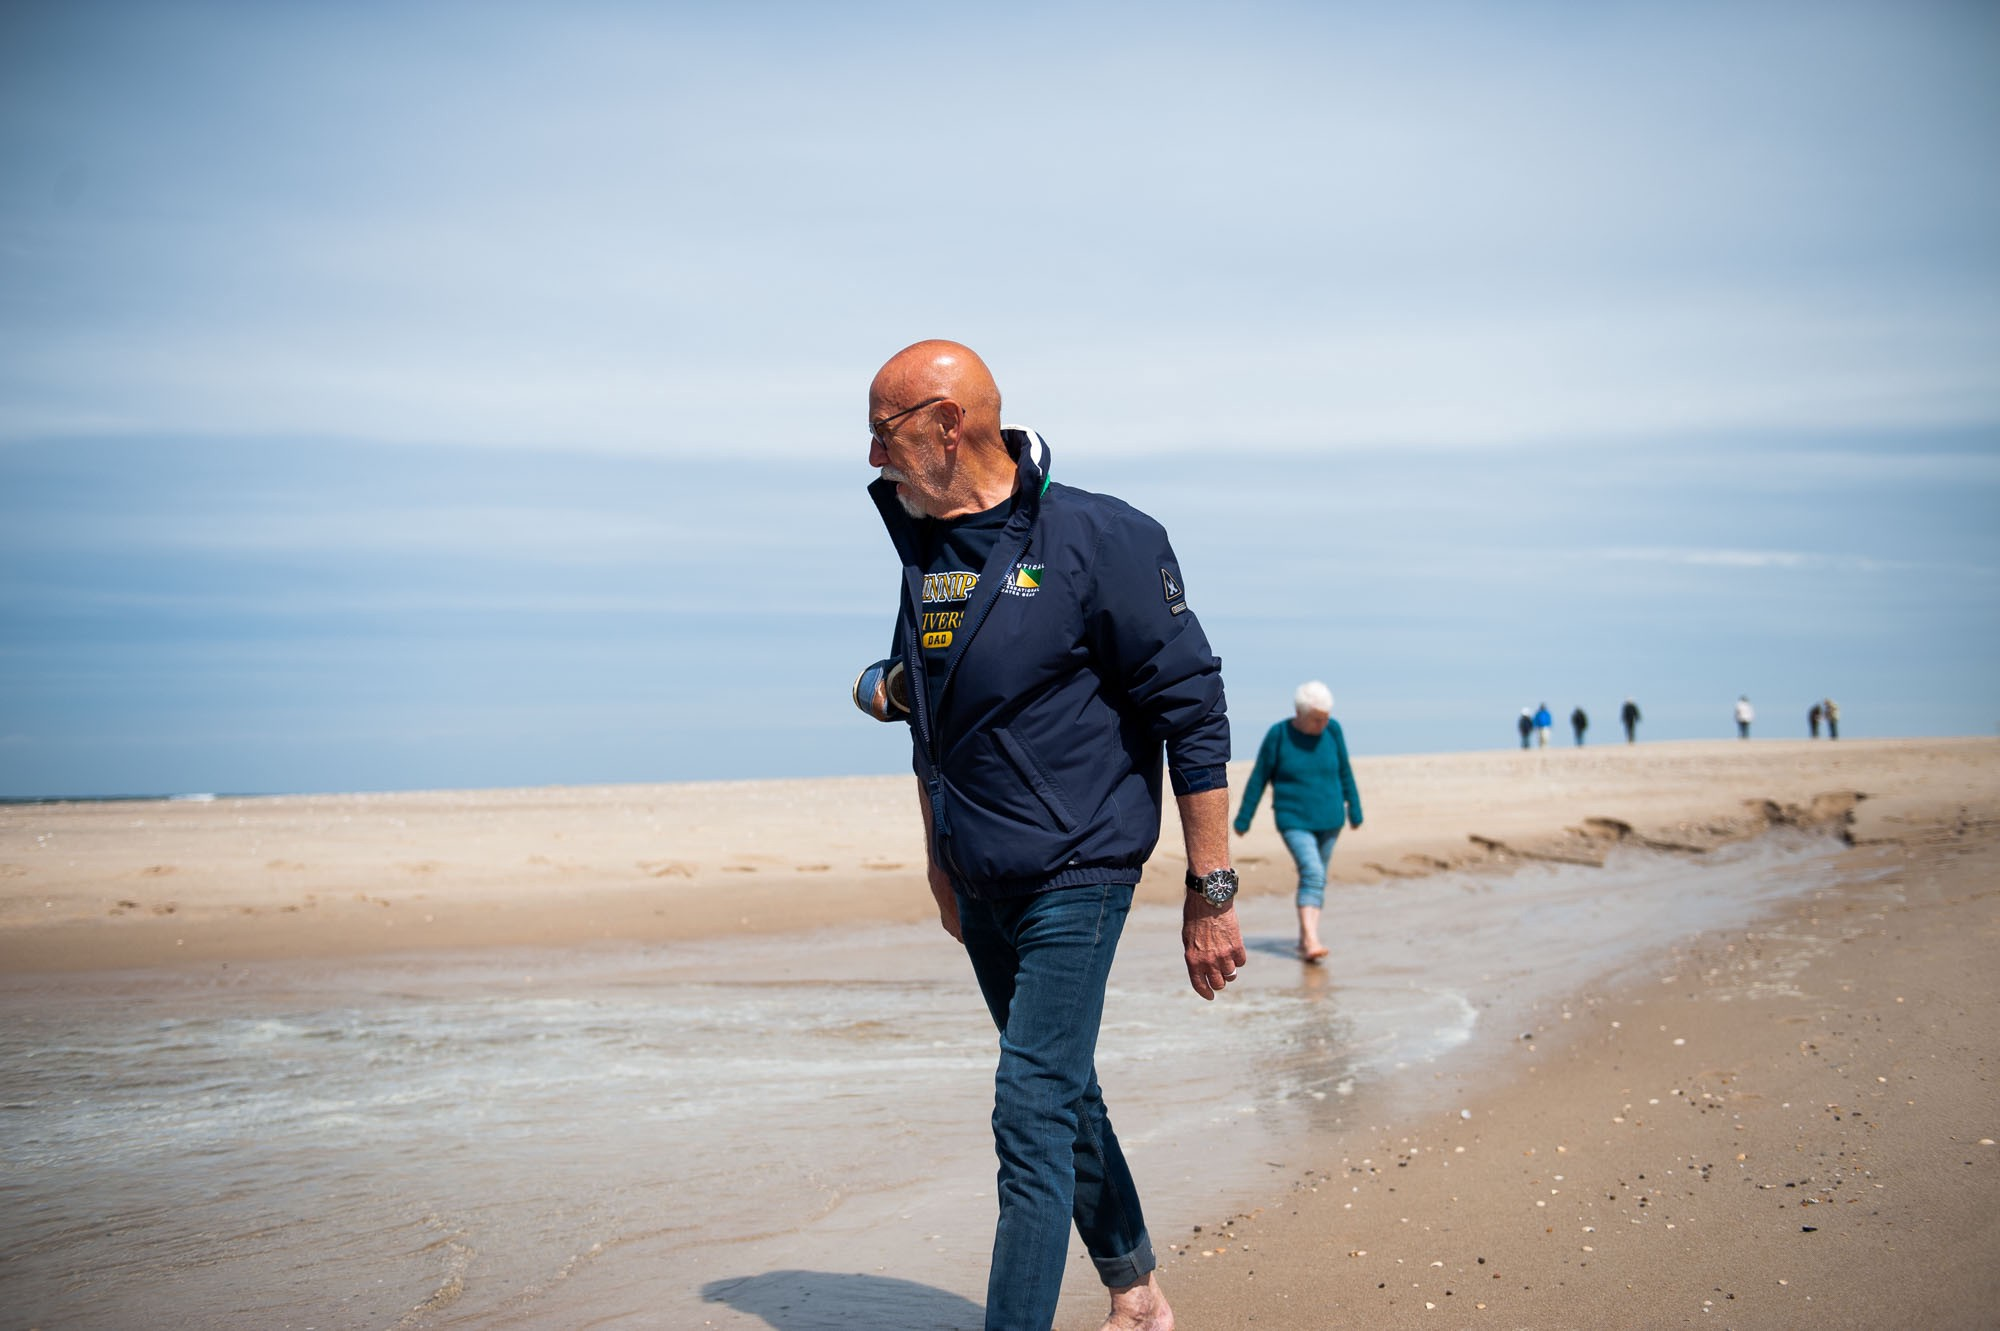 Dad leads mom on their beach walk near Baakdeel. Rantum, Germany, May 24, 2019.